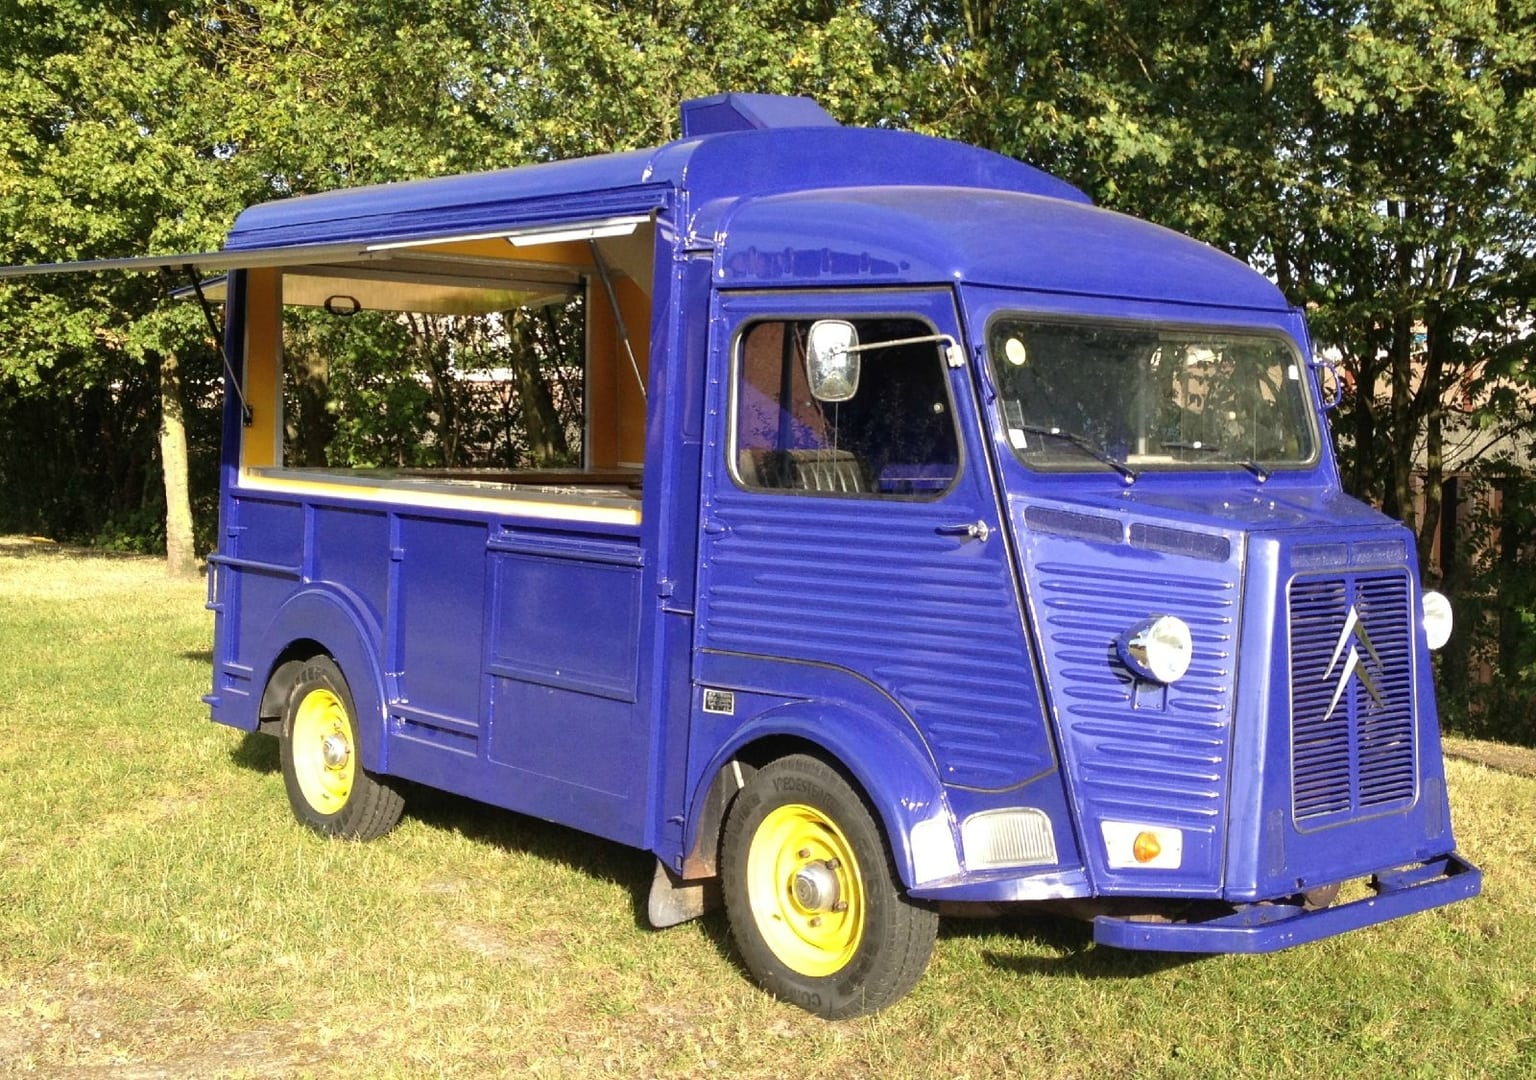 Transformation d'un HY Camping Car en Truck Food GroteFoto-BDA3J3NZ